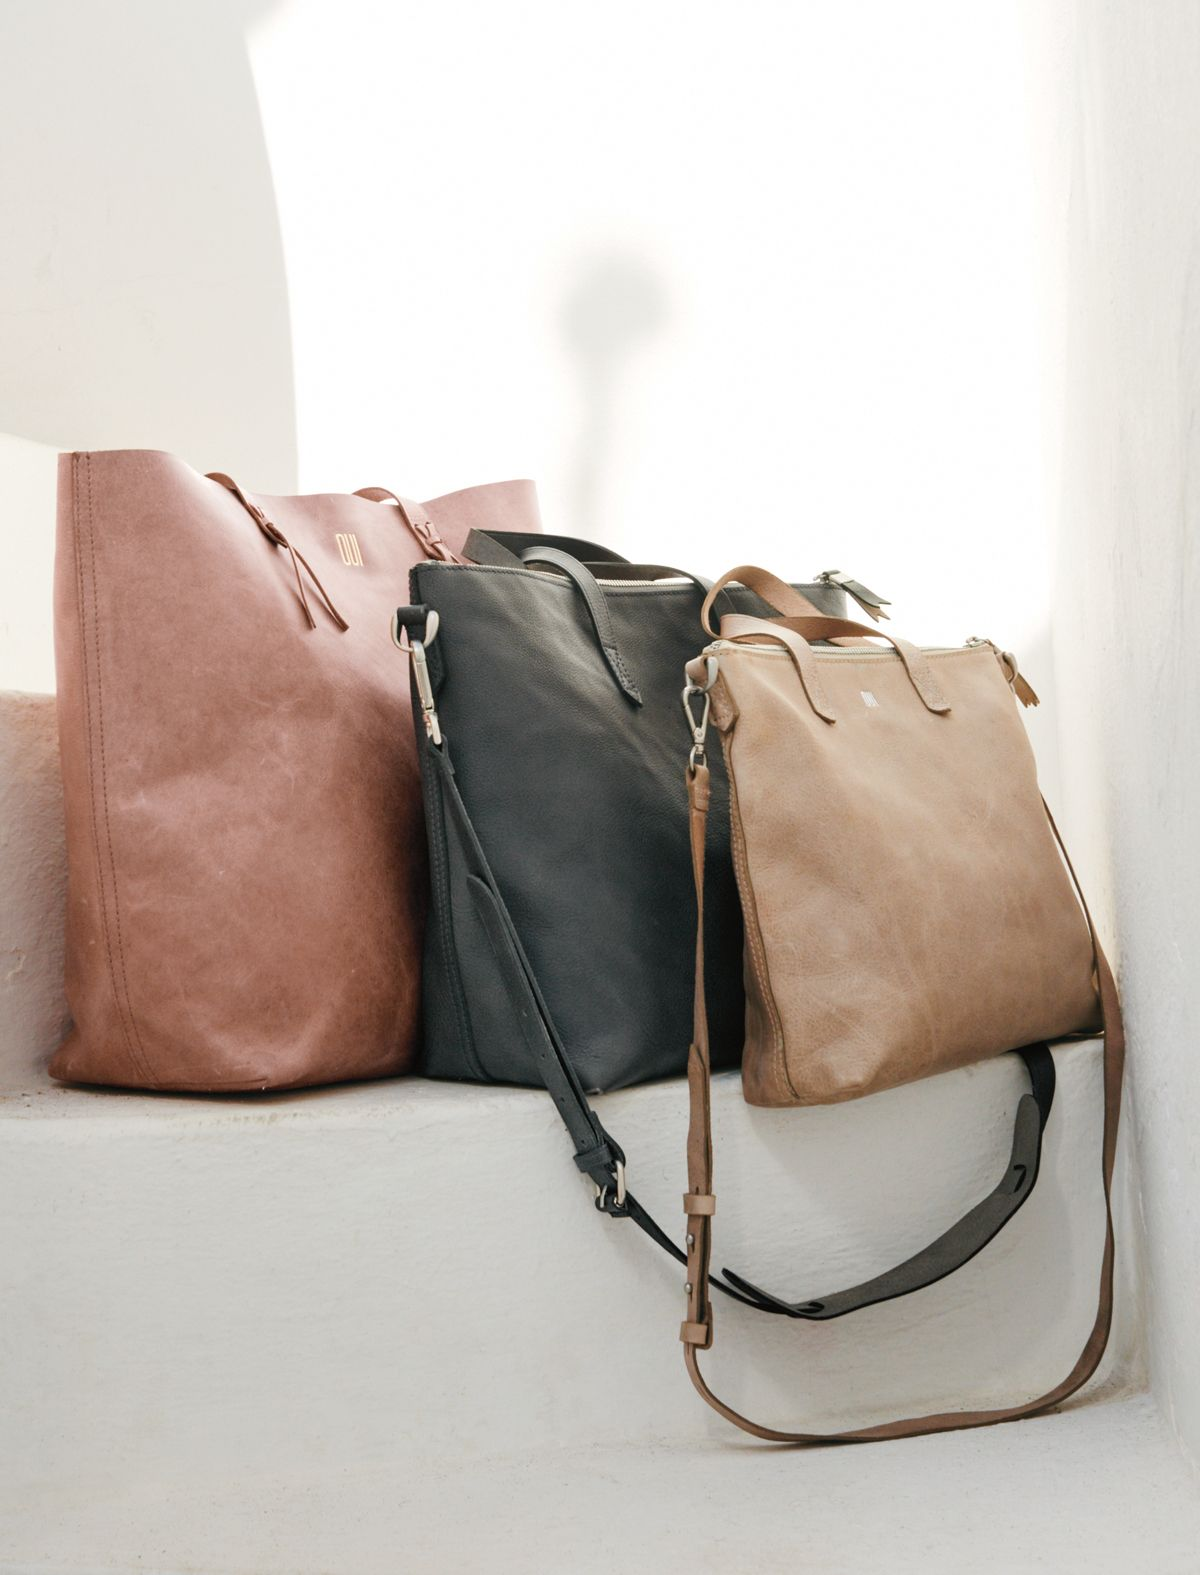 madewell mini transport crossbody tote, zip transport tote + transport tote. #totewell